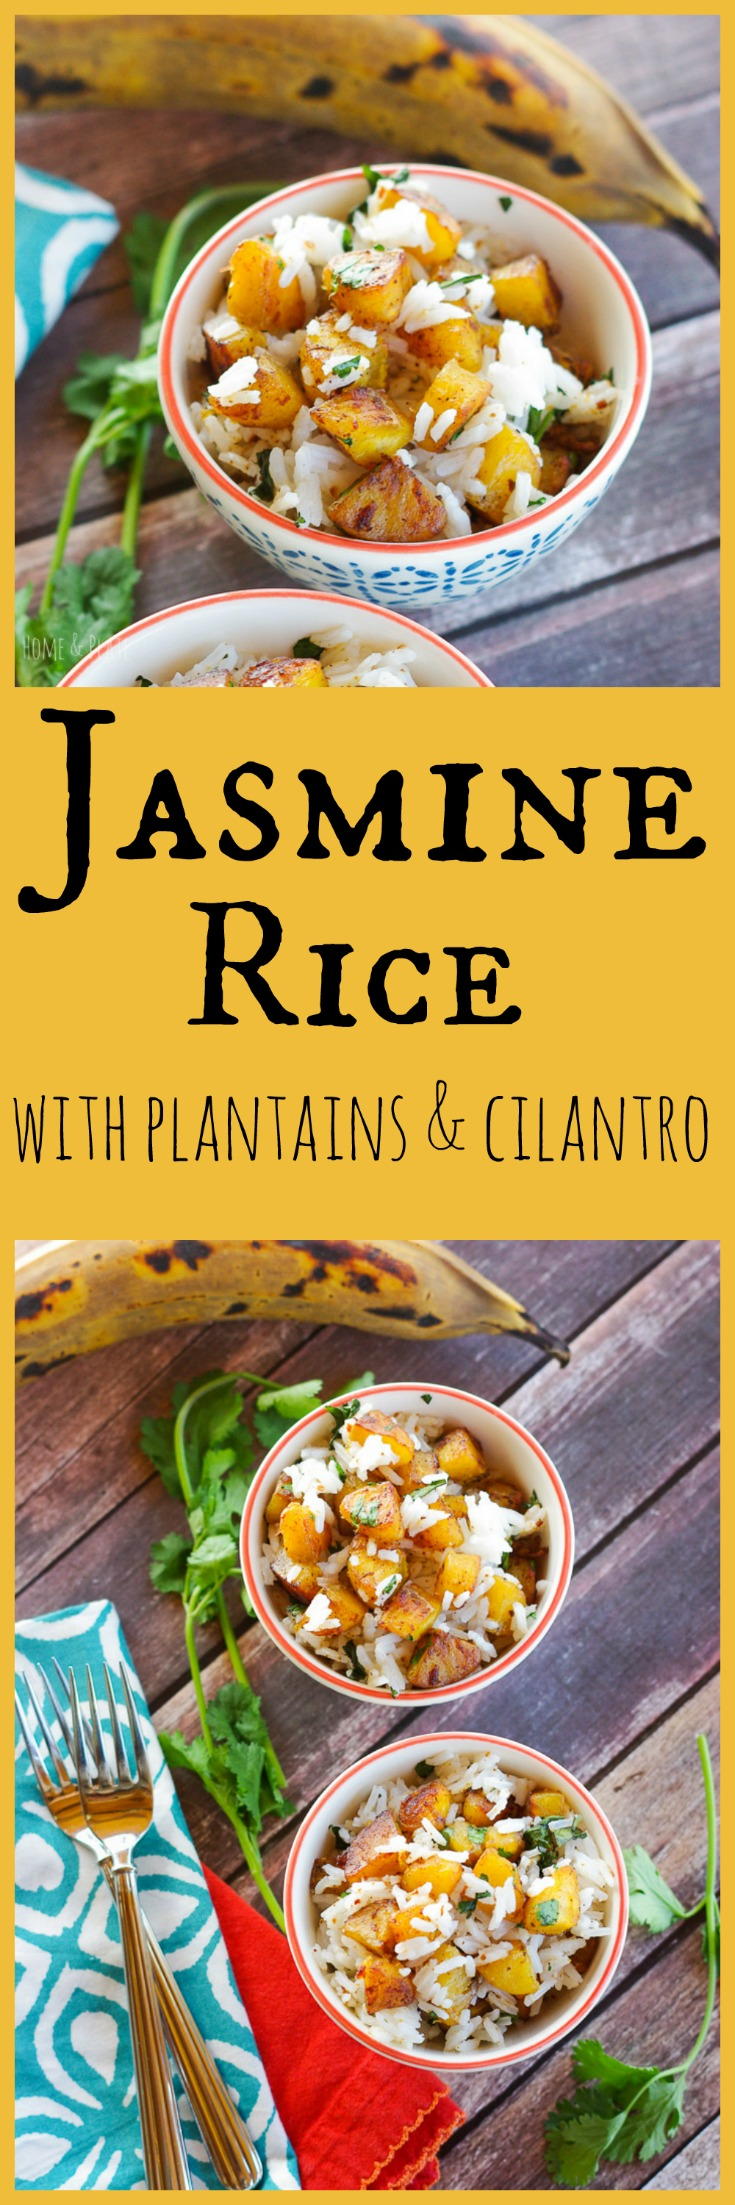 Jasmine Rice with Plantains & Cilantro | www.homeandplate.com | What could be better than potassium-rich plantains sautéed to a caramel-like deliciousness and tossed with sweet jasmine rice and fresh cilantro.